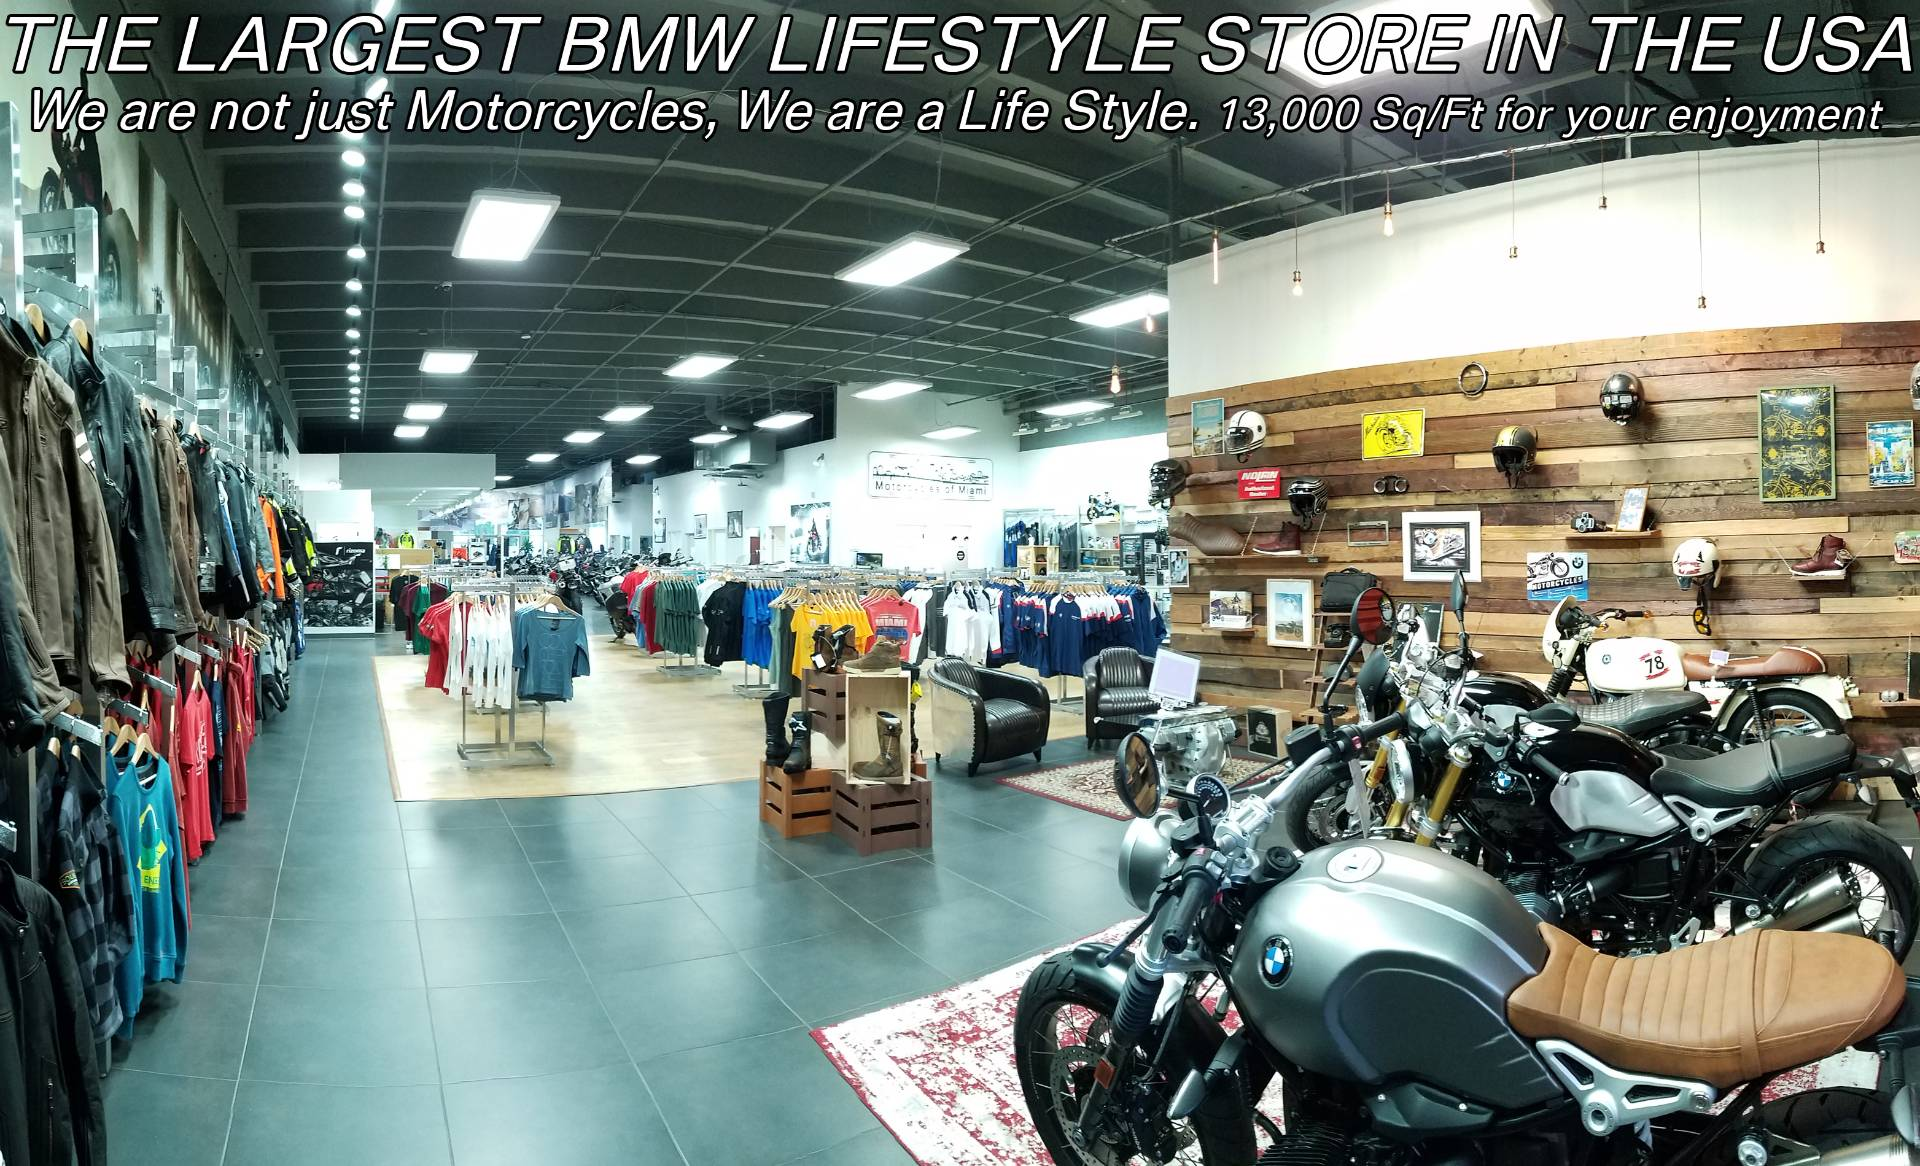 Used 2017 BMW R 1200 GSA for sale, Pre-owned BMW R1200GSA for sale, BMW Motorcycle Adventure, used BMW Adventure triple black, BMW Motorcycles of Miami, Motorcycles of Miami, Motorcycles Miami, New Motorcycles, Used Motorcycles, pre-owned. #BMWMotorcyclesOfMiami #MotorcyclesOfMiami - Photo 29